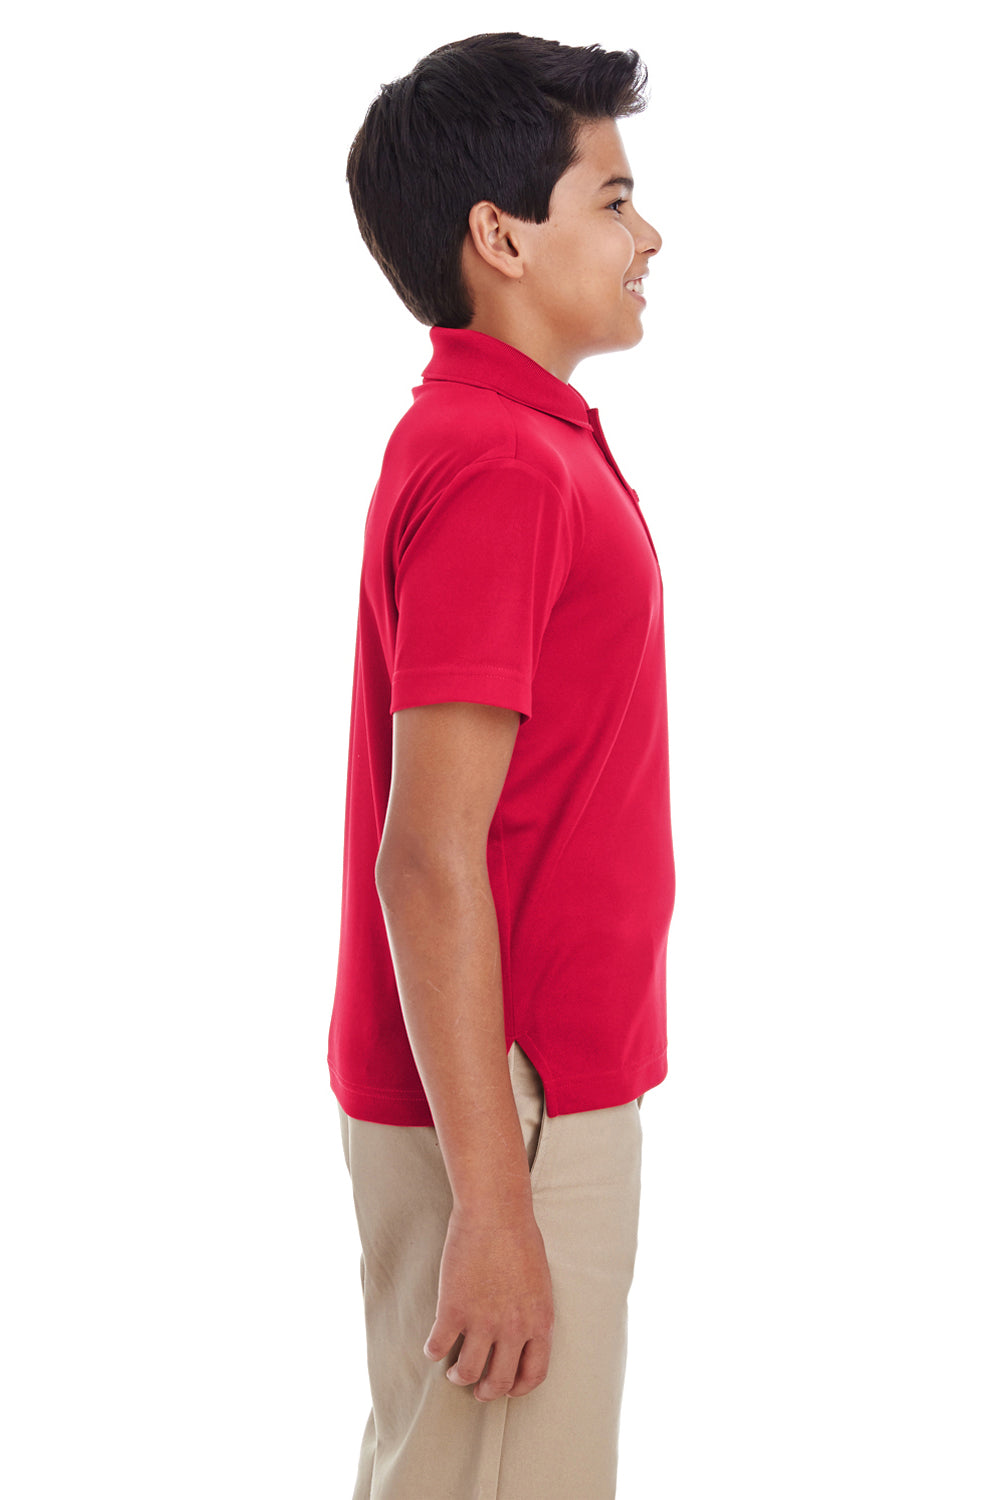 Core 365 88181Y Youth Origin Performance Moisture Wicking Short Sleeve Polo Shirt Red Side